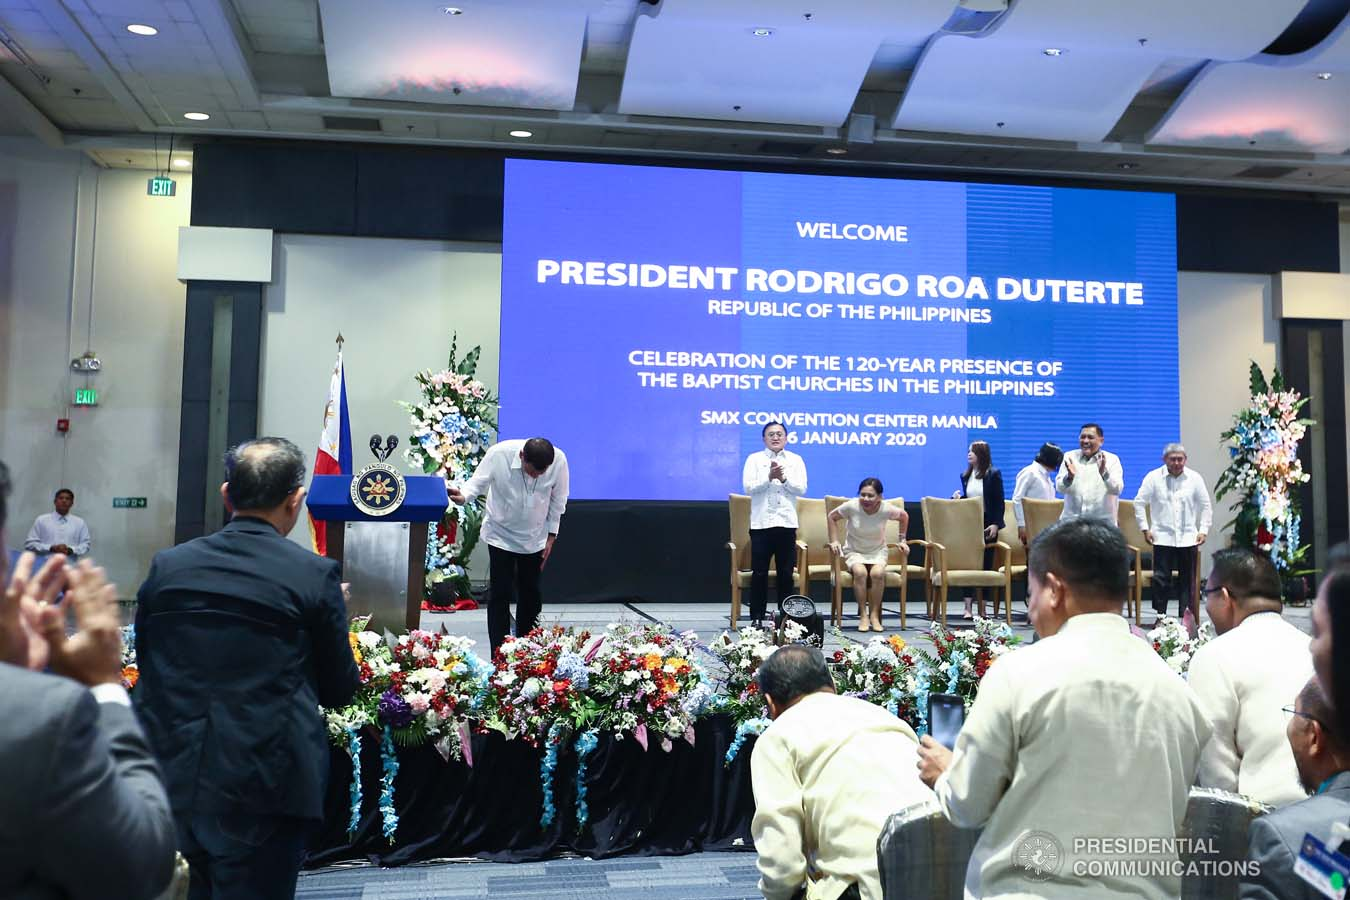 President Rodrigo Roa Duterte takes a bow after delivering his speech during the celebration of the 120-year presence of the Baptist Churches in the Philippines at the SMX Convention Center in Pasay City on January 16, 2020. VALERIE ESCALERA/PRESIDENTIAL PHOTO